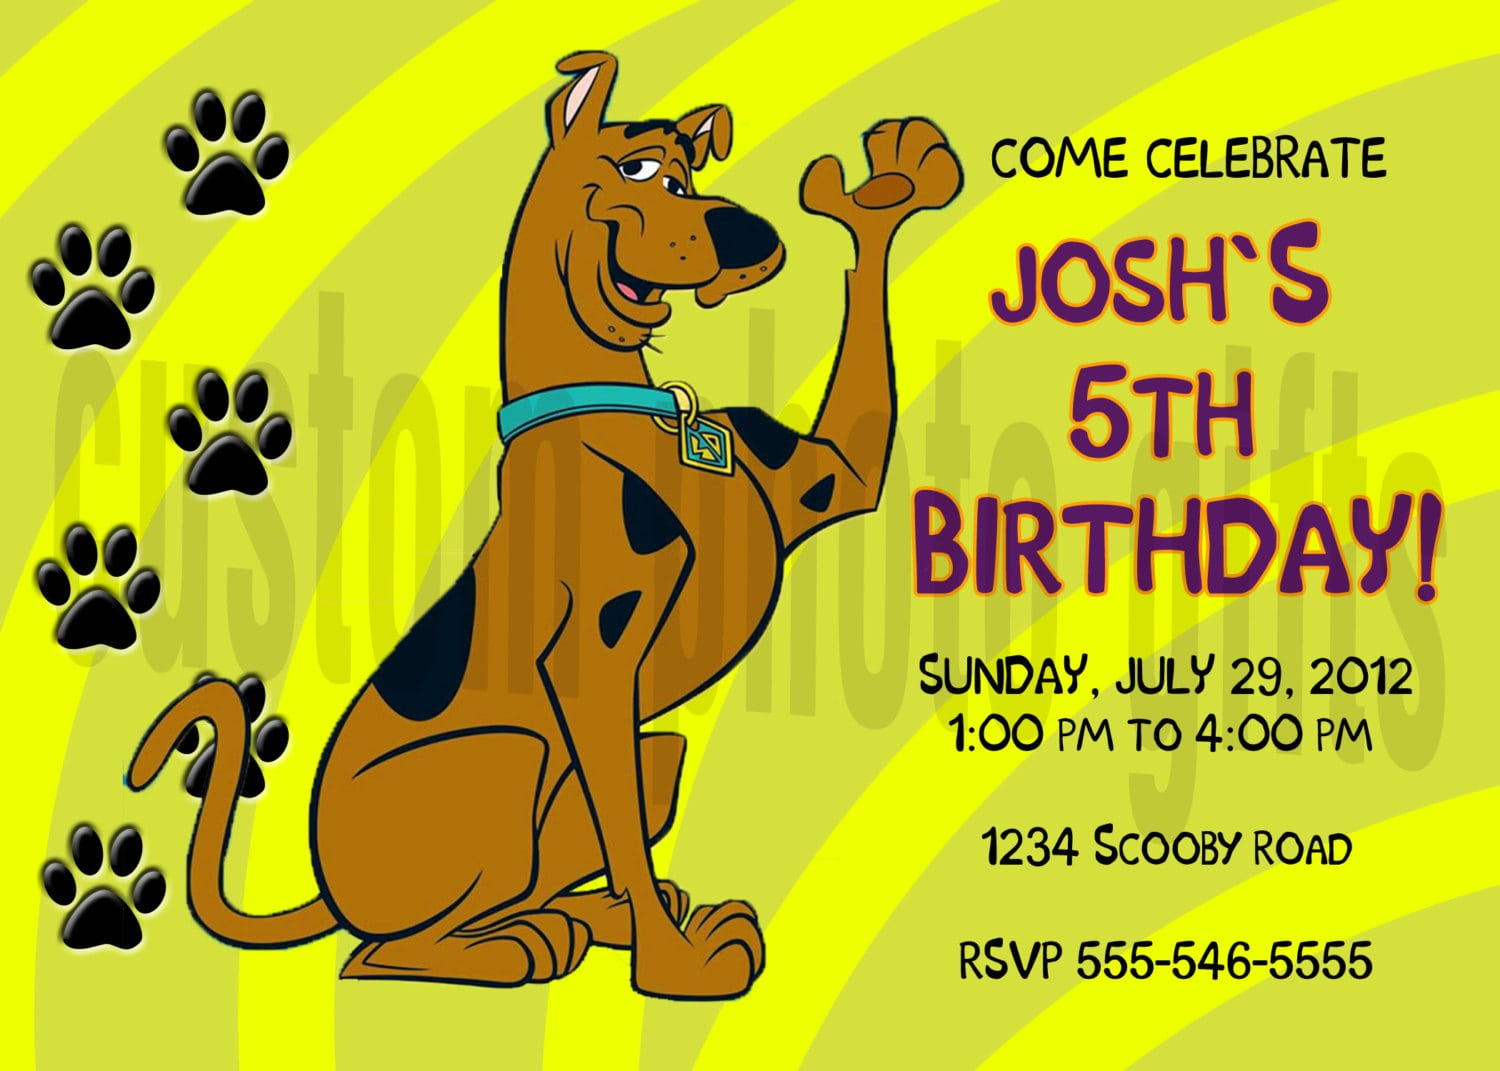 13 Year Old Birthday Party Invitations – Scooby Doo Party Invitations